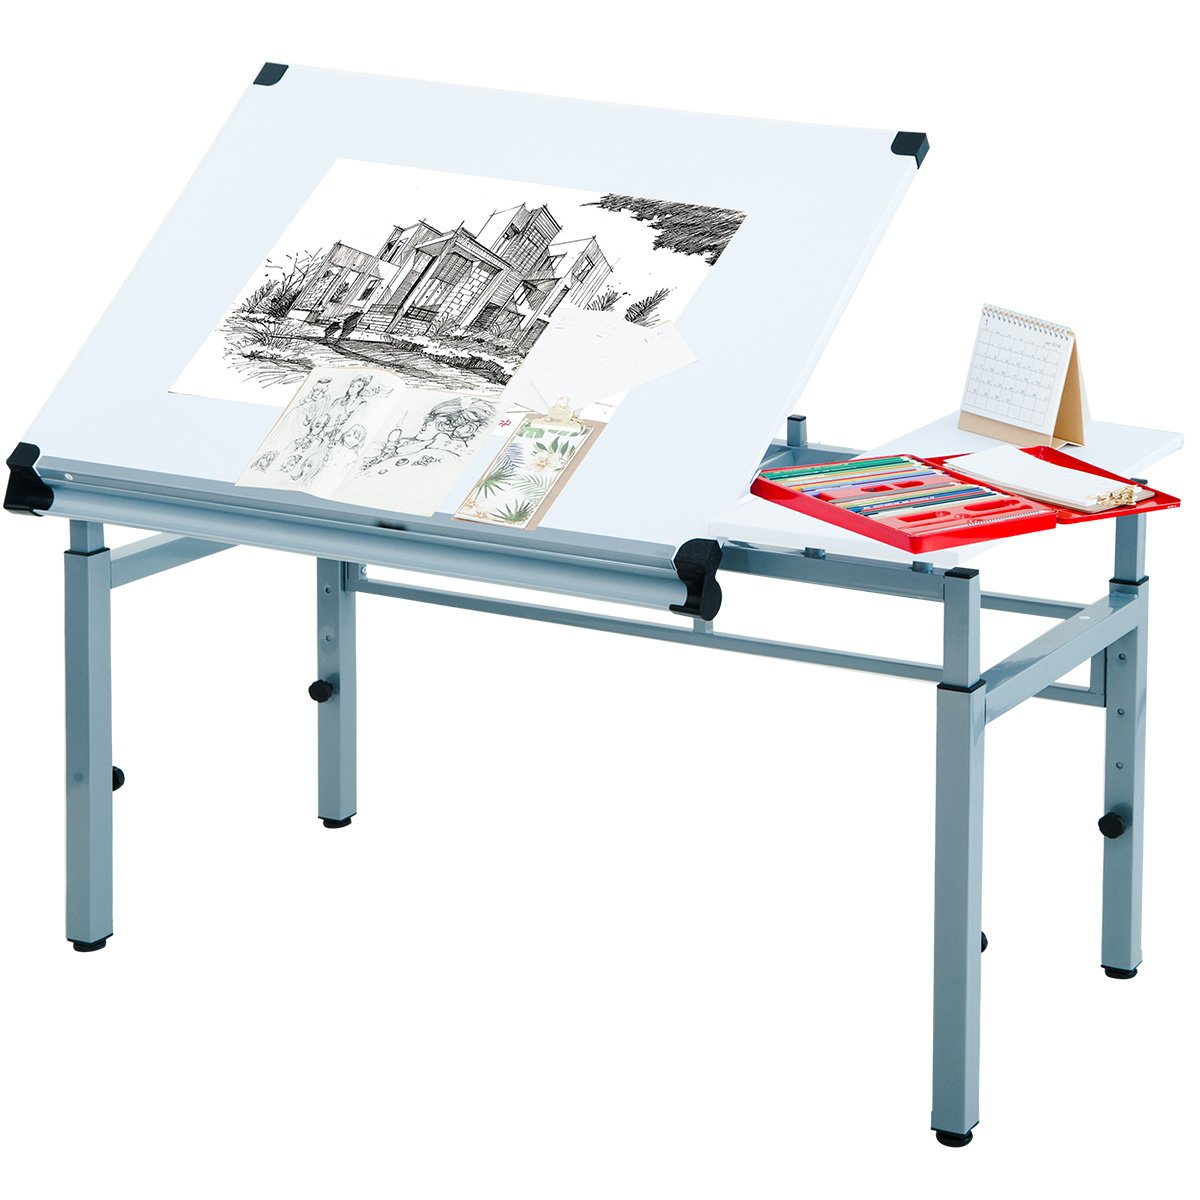 Harper&Bright Designs Drafting and Hobby Table Drawing Desk with Folding Top and Adjustable legs (Oak) HD